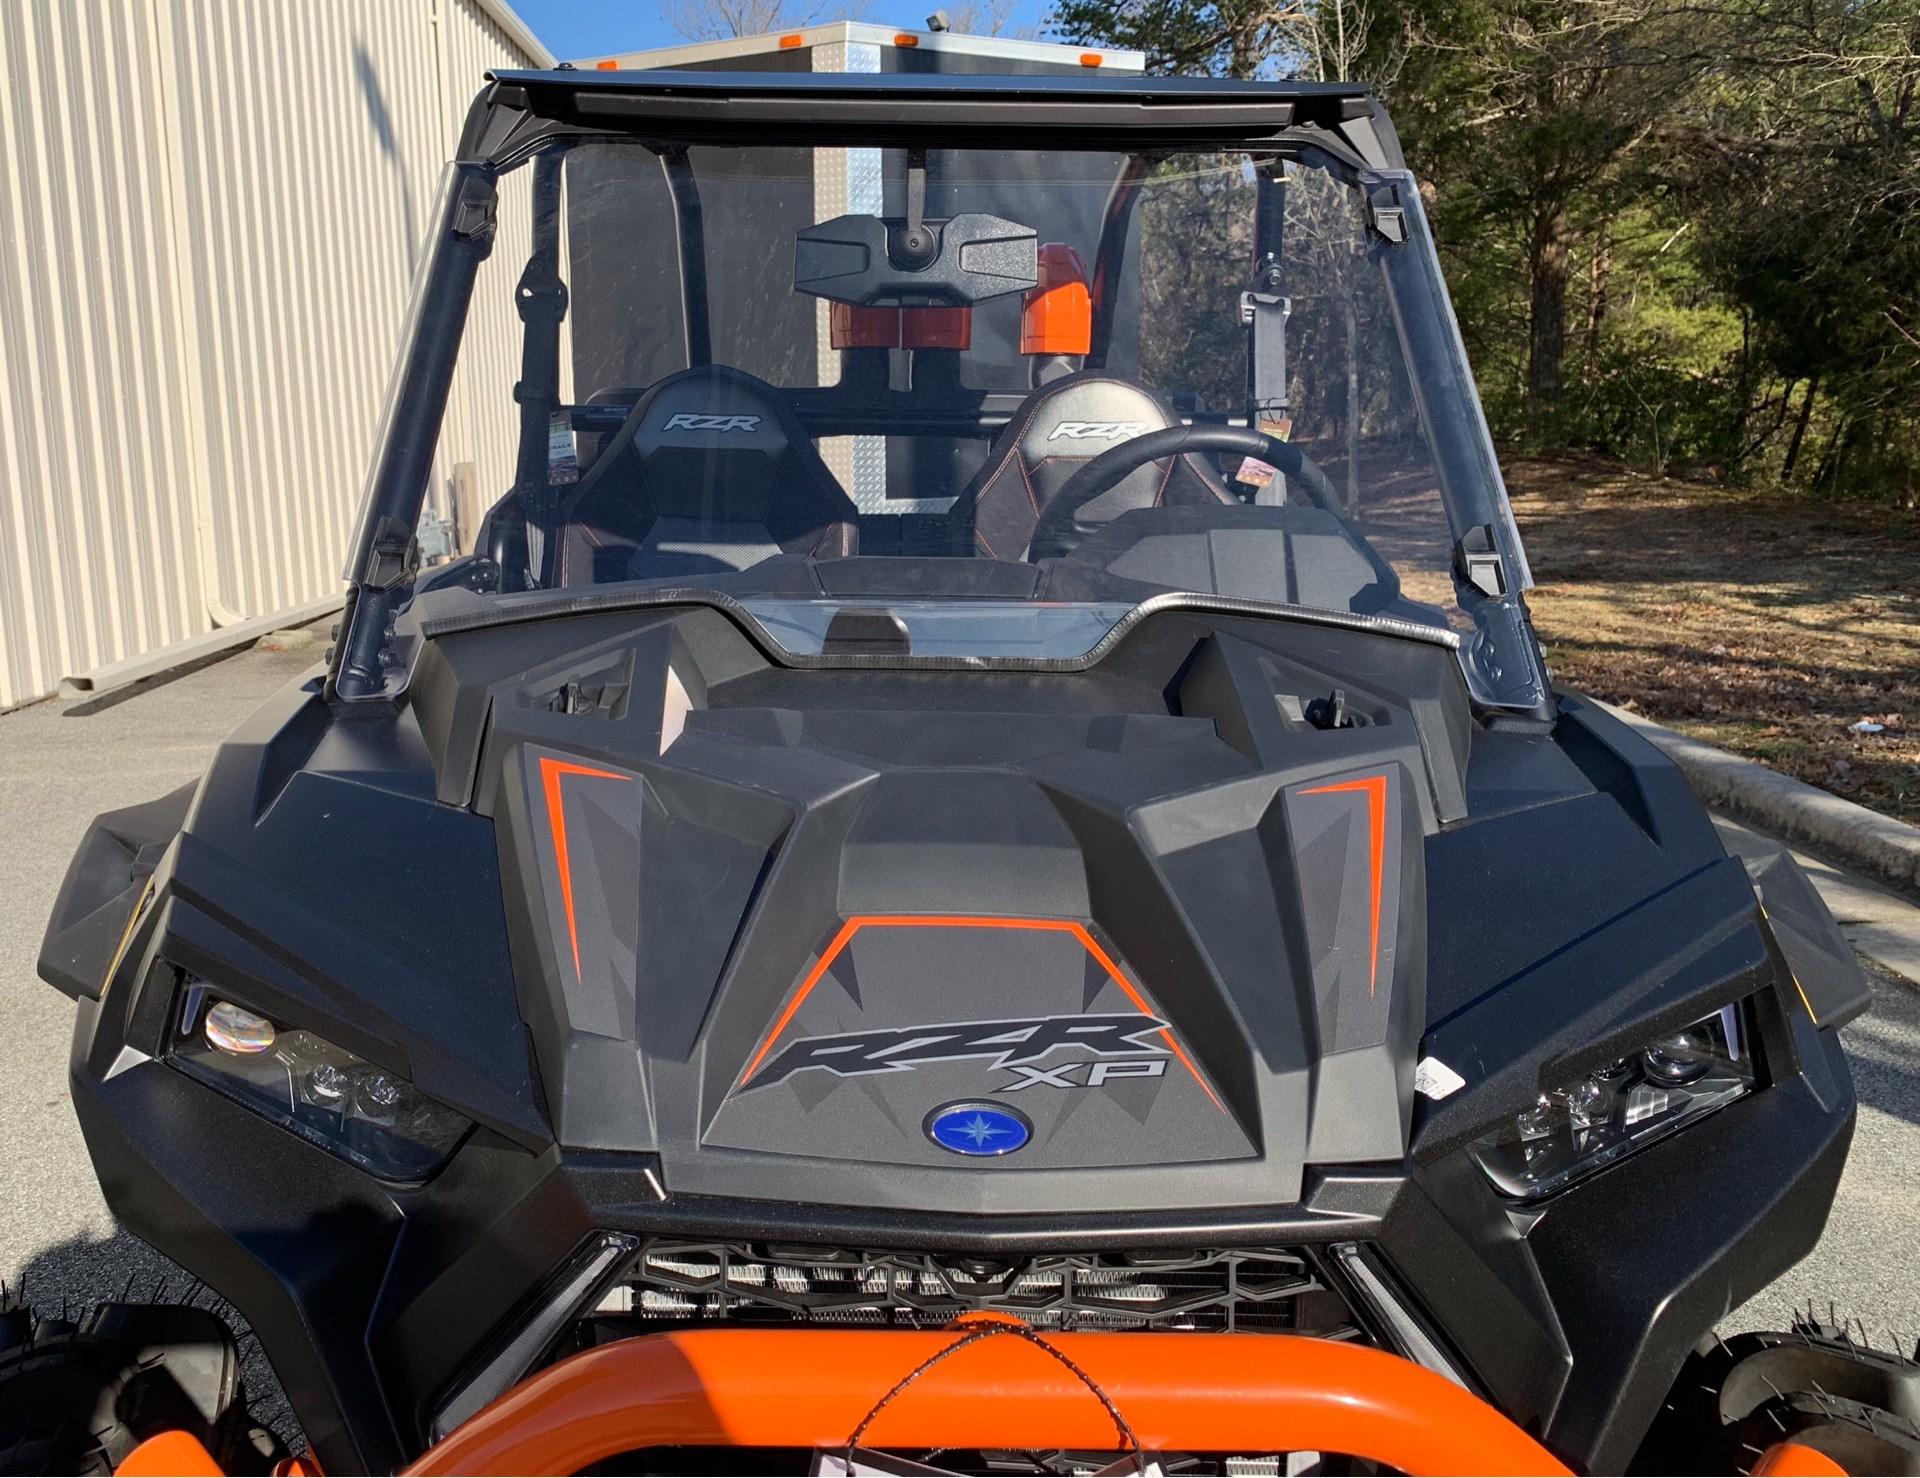 2019 Polaris RZR XP 1000 High Lifter in High Point, North Carolina - Photo 12